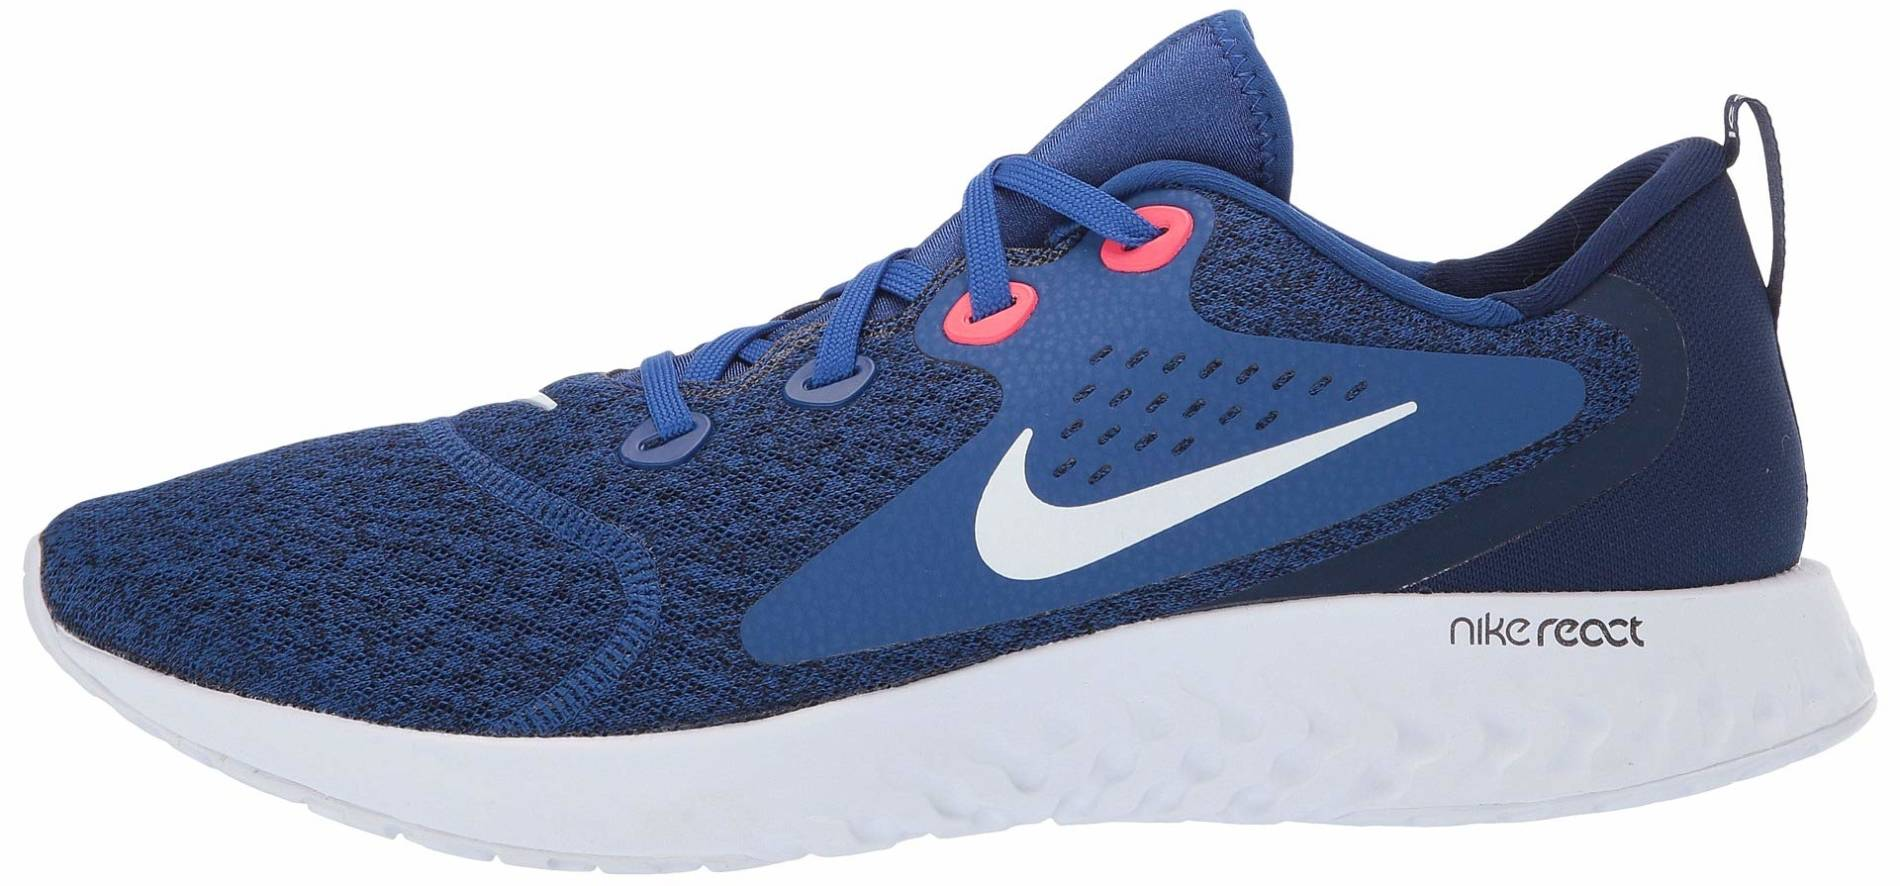 Only $59 + Review of Nike Legend React